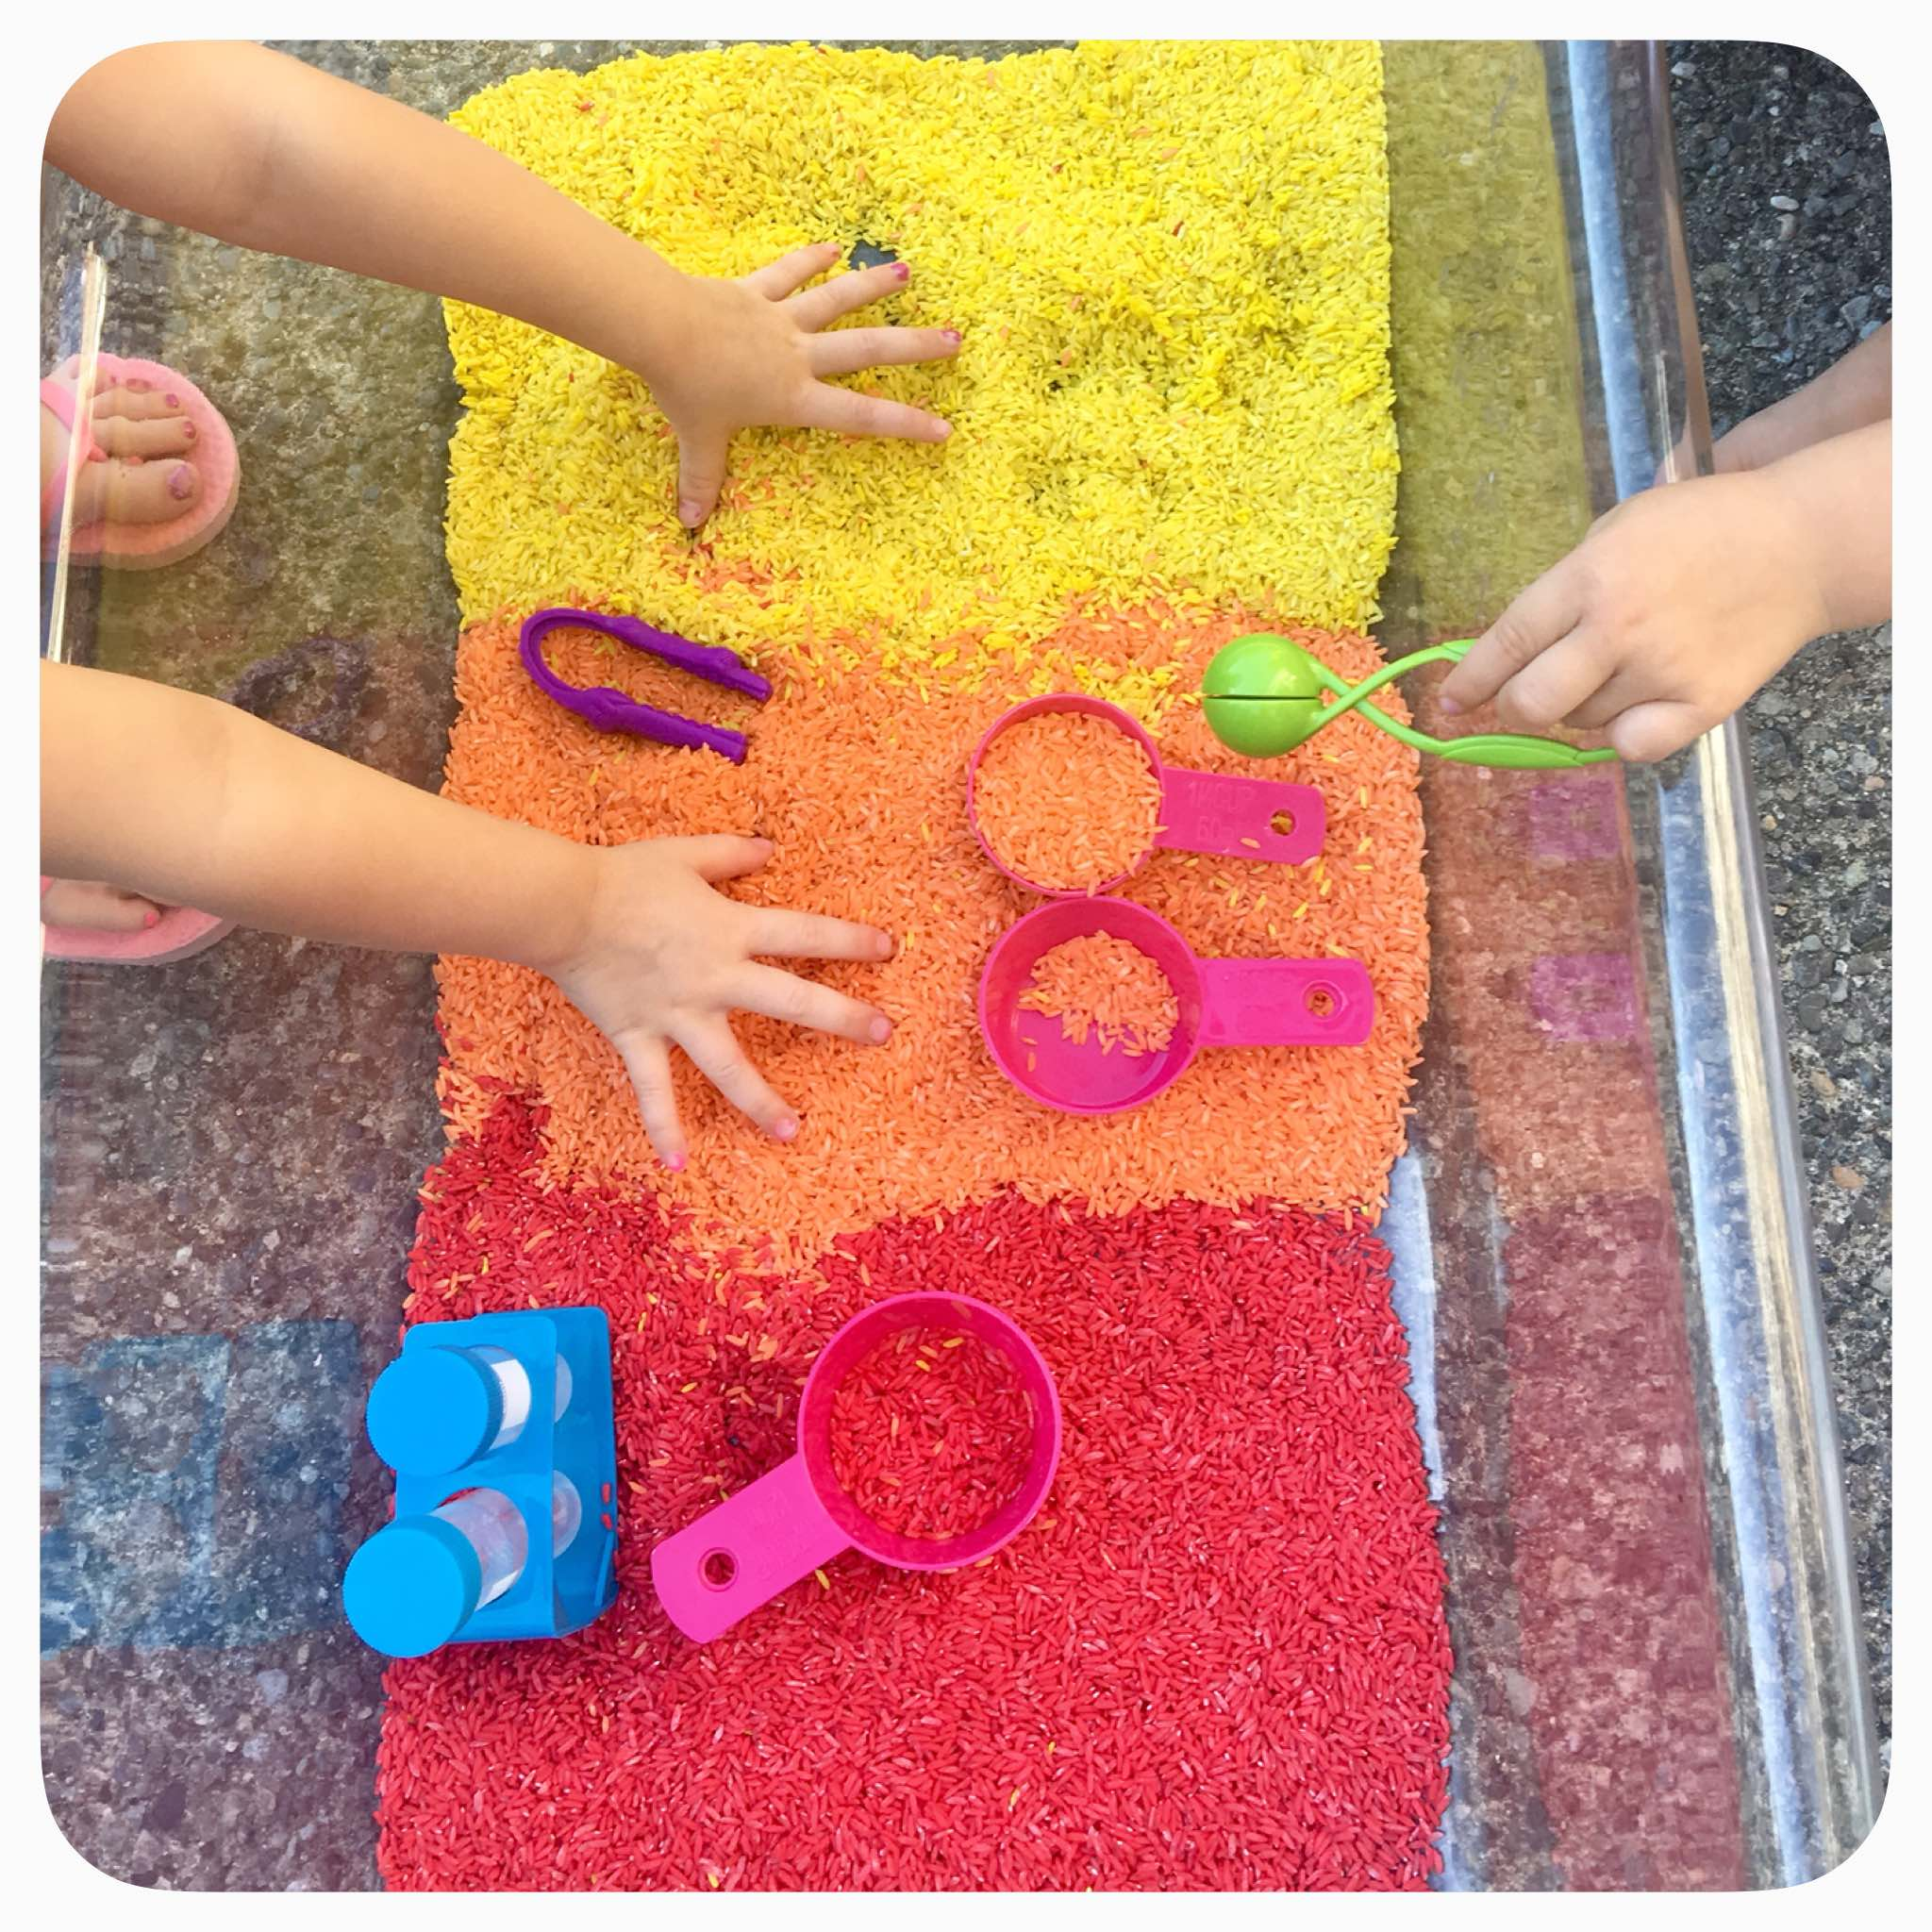 Fall Sensory Bin - Amazing how much play kids can get out of such simple sensory materials. Acrylic paints to dye the rice .